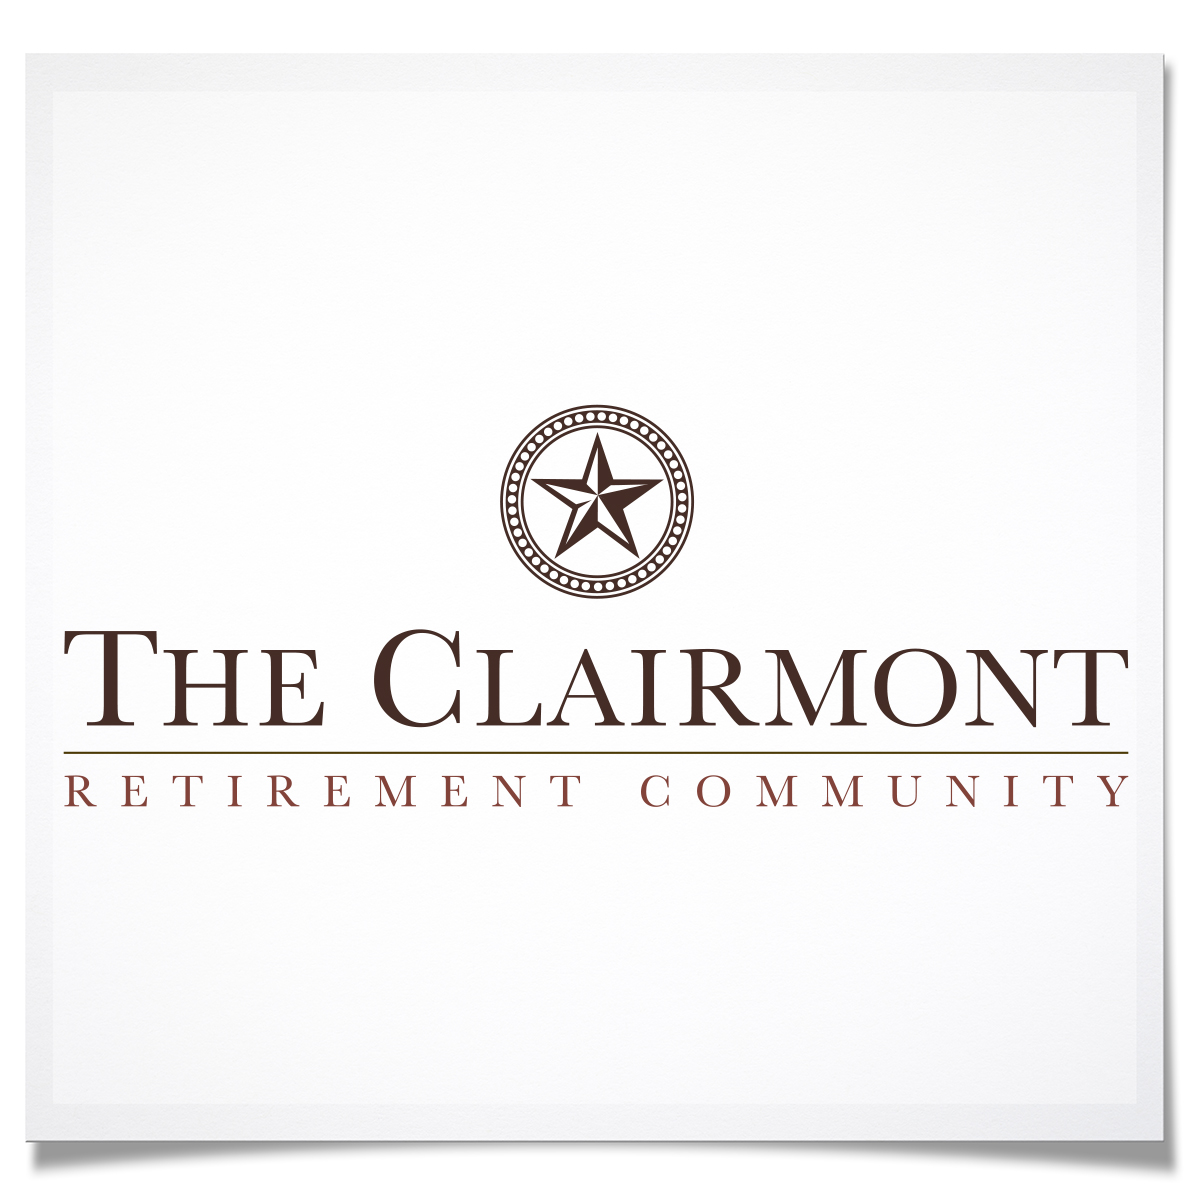 The Clairmont Retirement Community